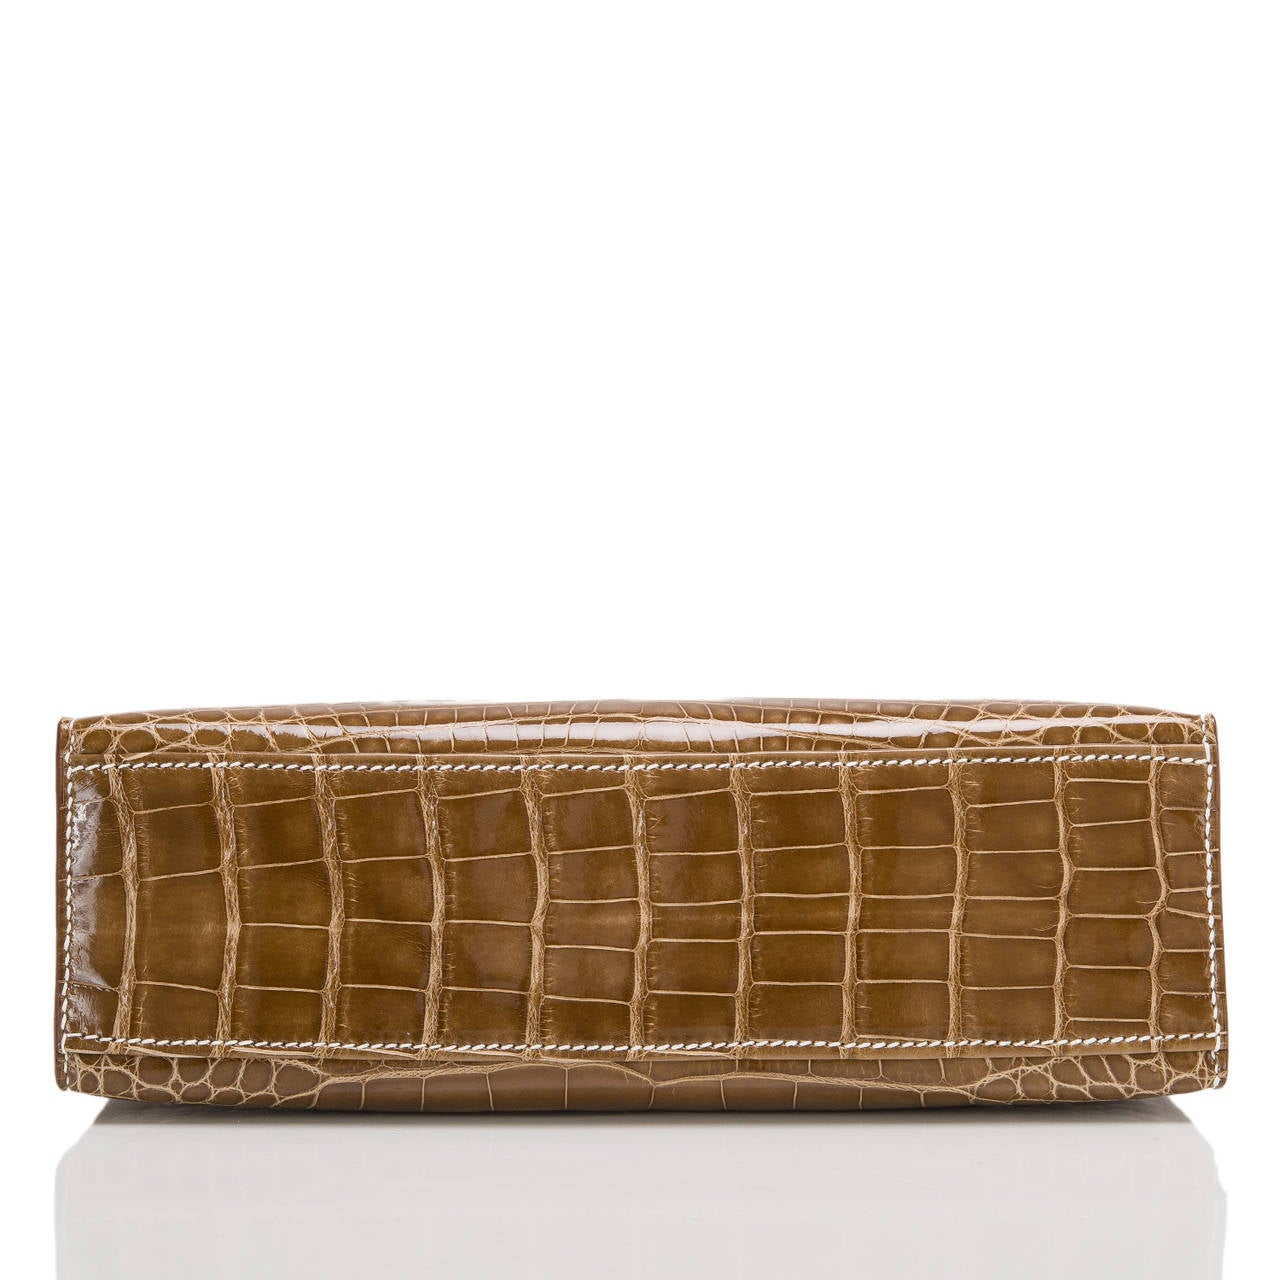 Hermes Glycine Kelly Pochette Cut Clutch Bag Palladium